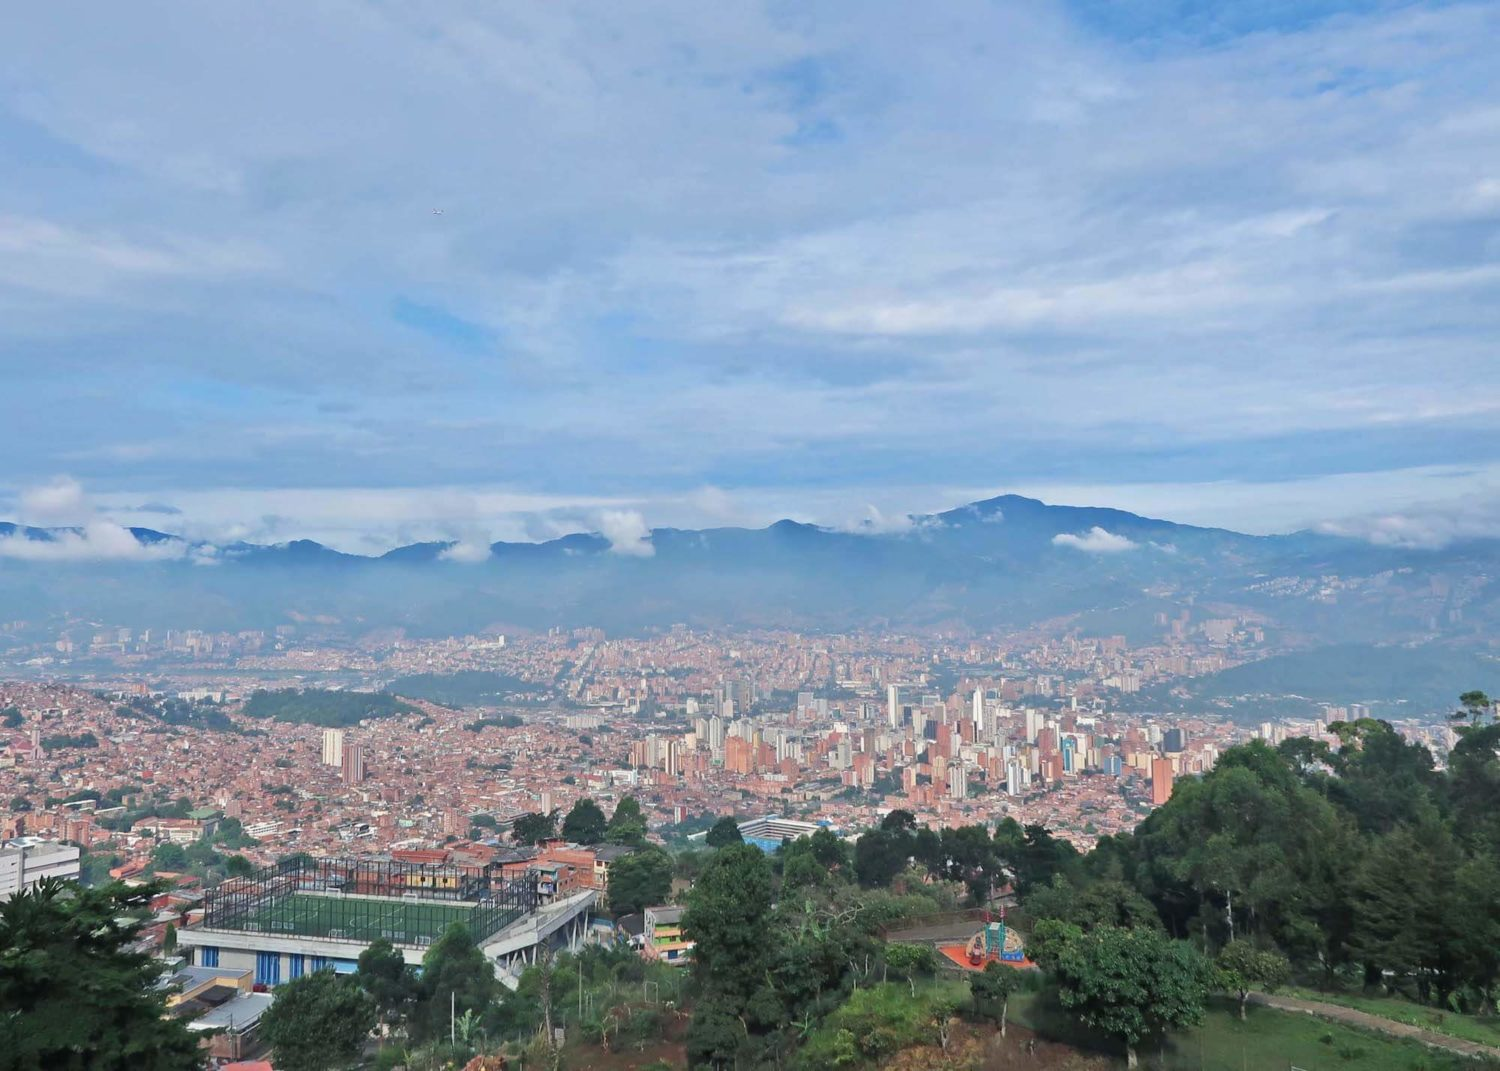 Medellin travel blog cover image of the city seen from Pan de Azucar